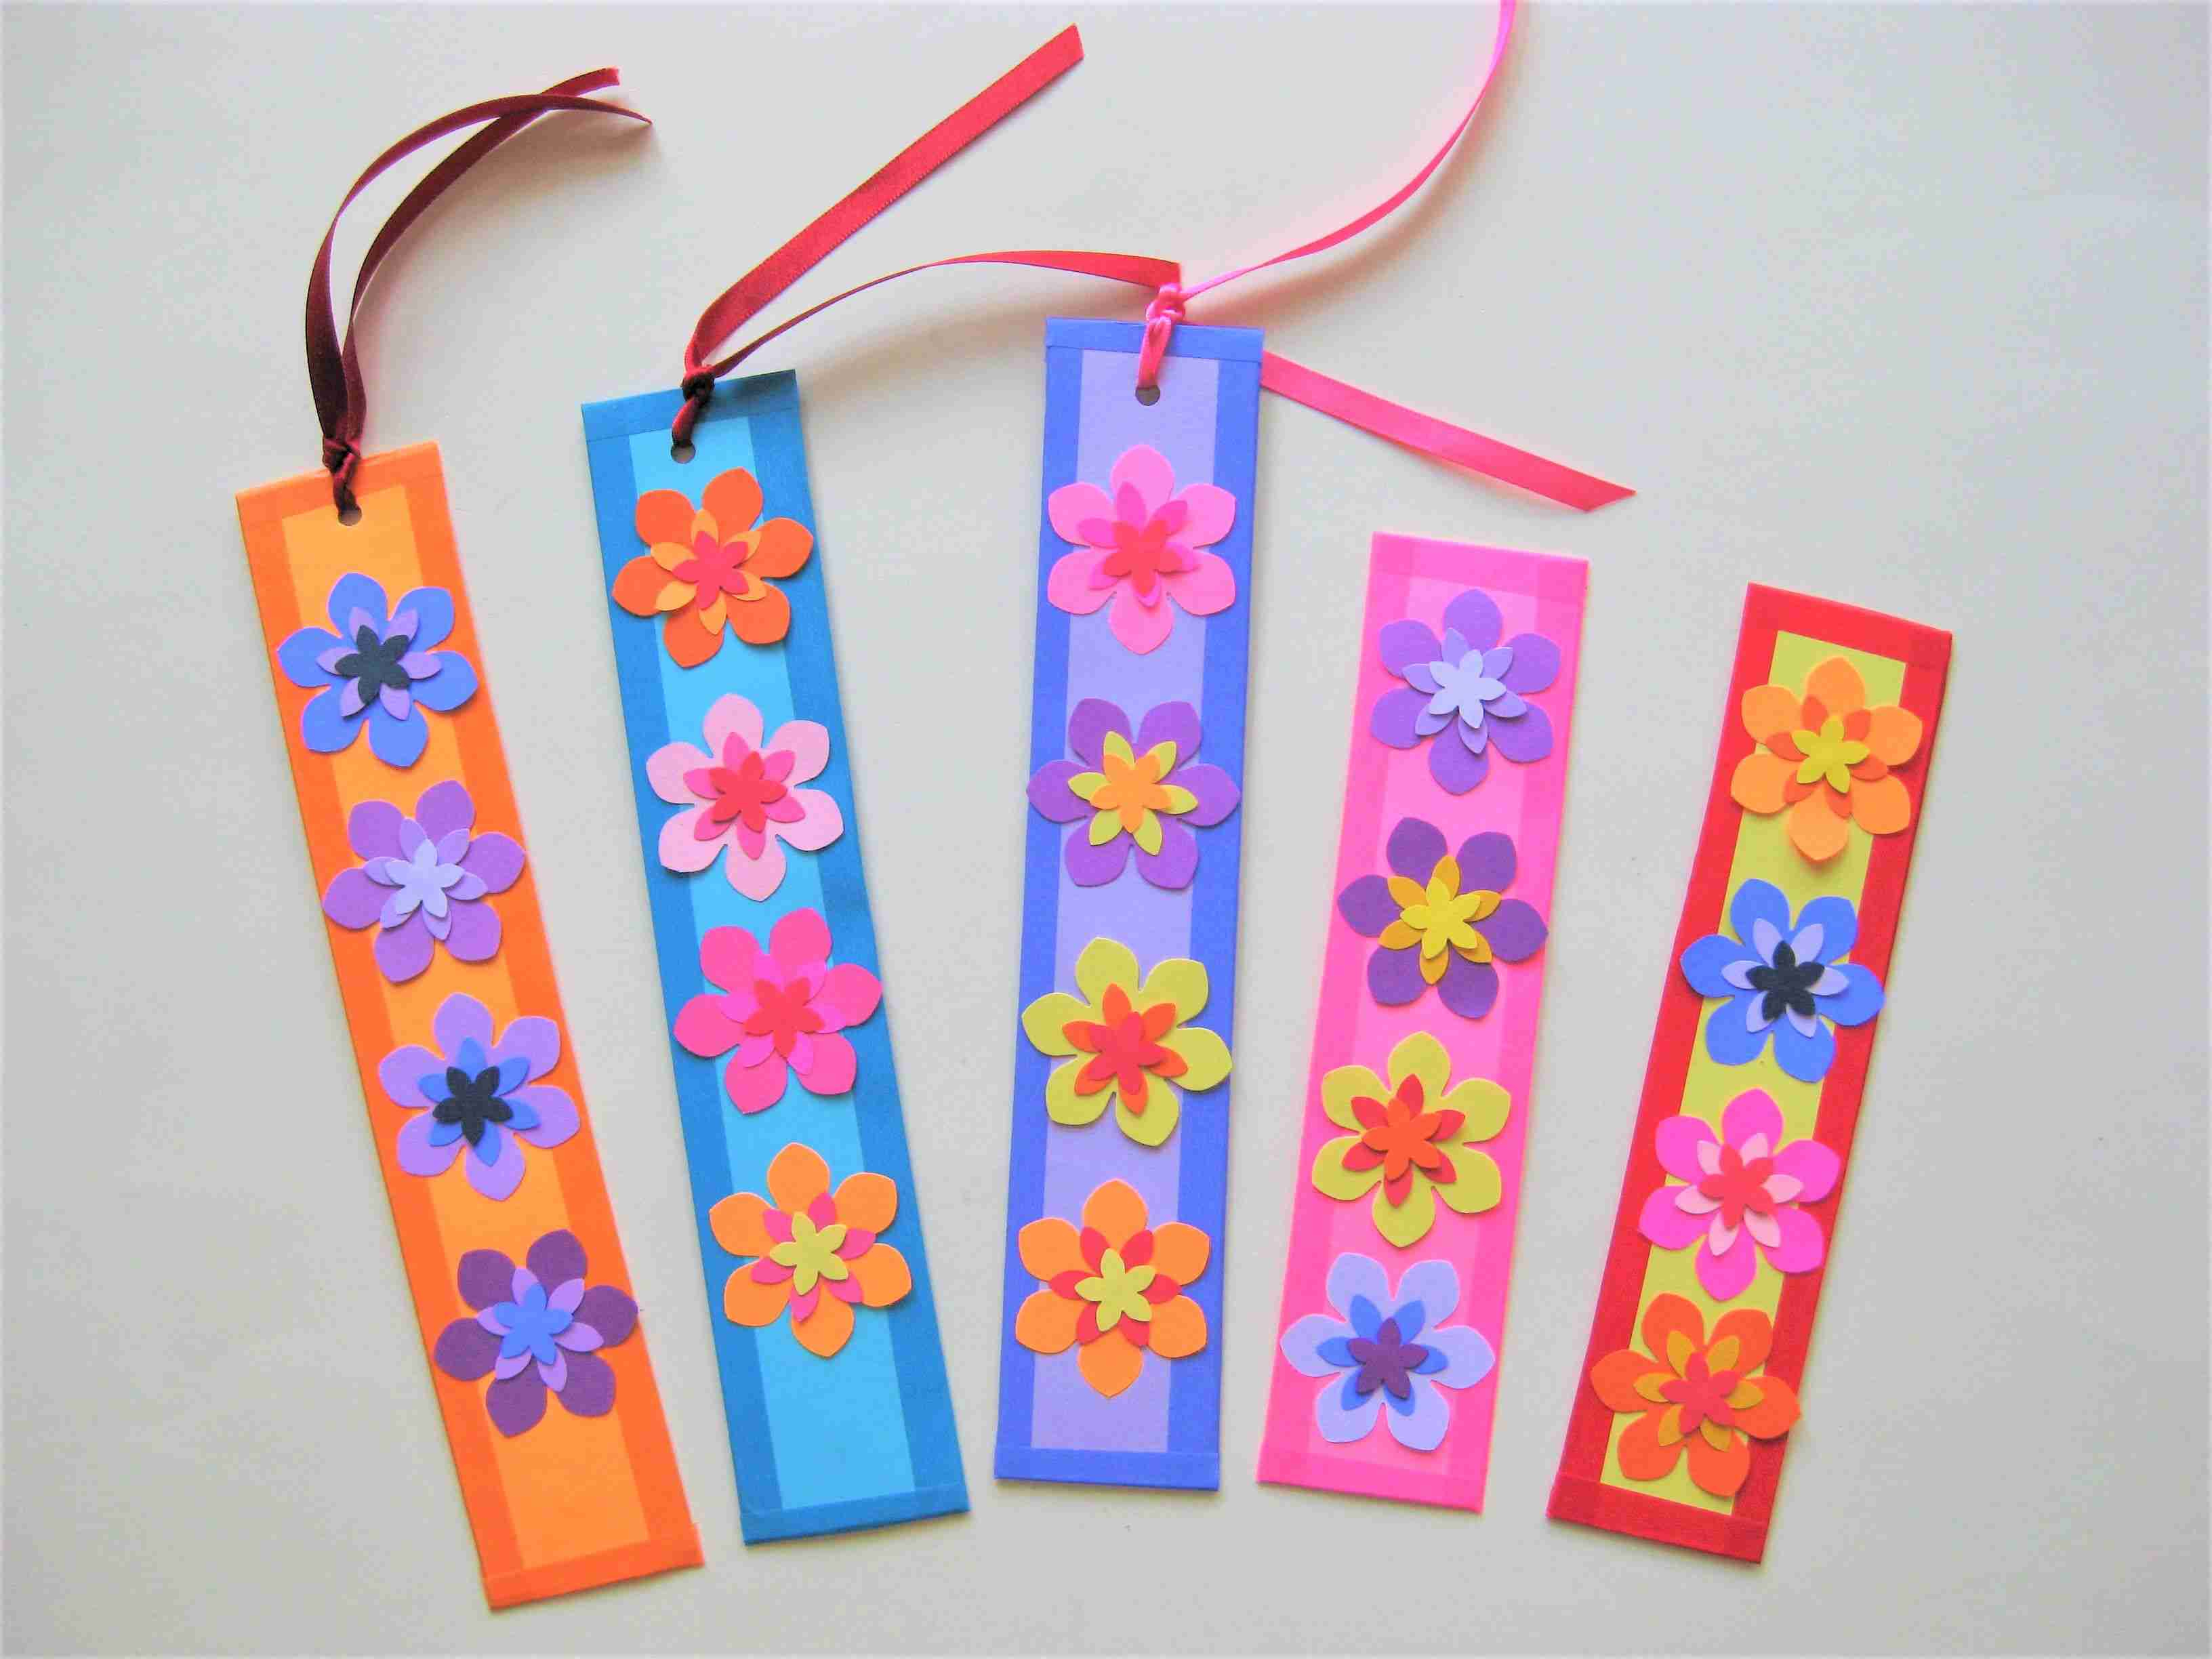 Handmade Paper Craft Gifts You can Make Right Now 100 Great Ideas For Inexpensive Homemade Gifts